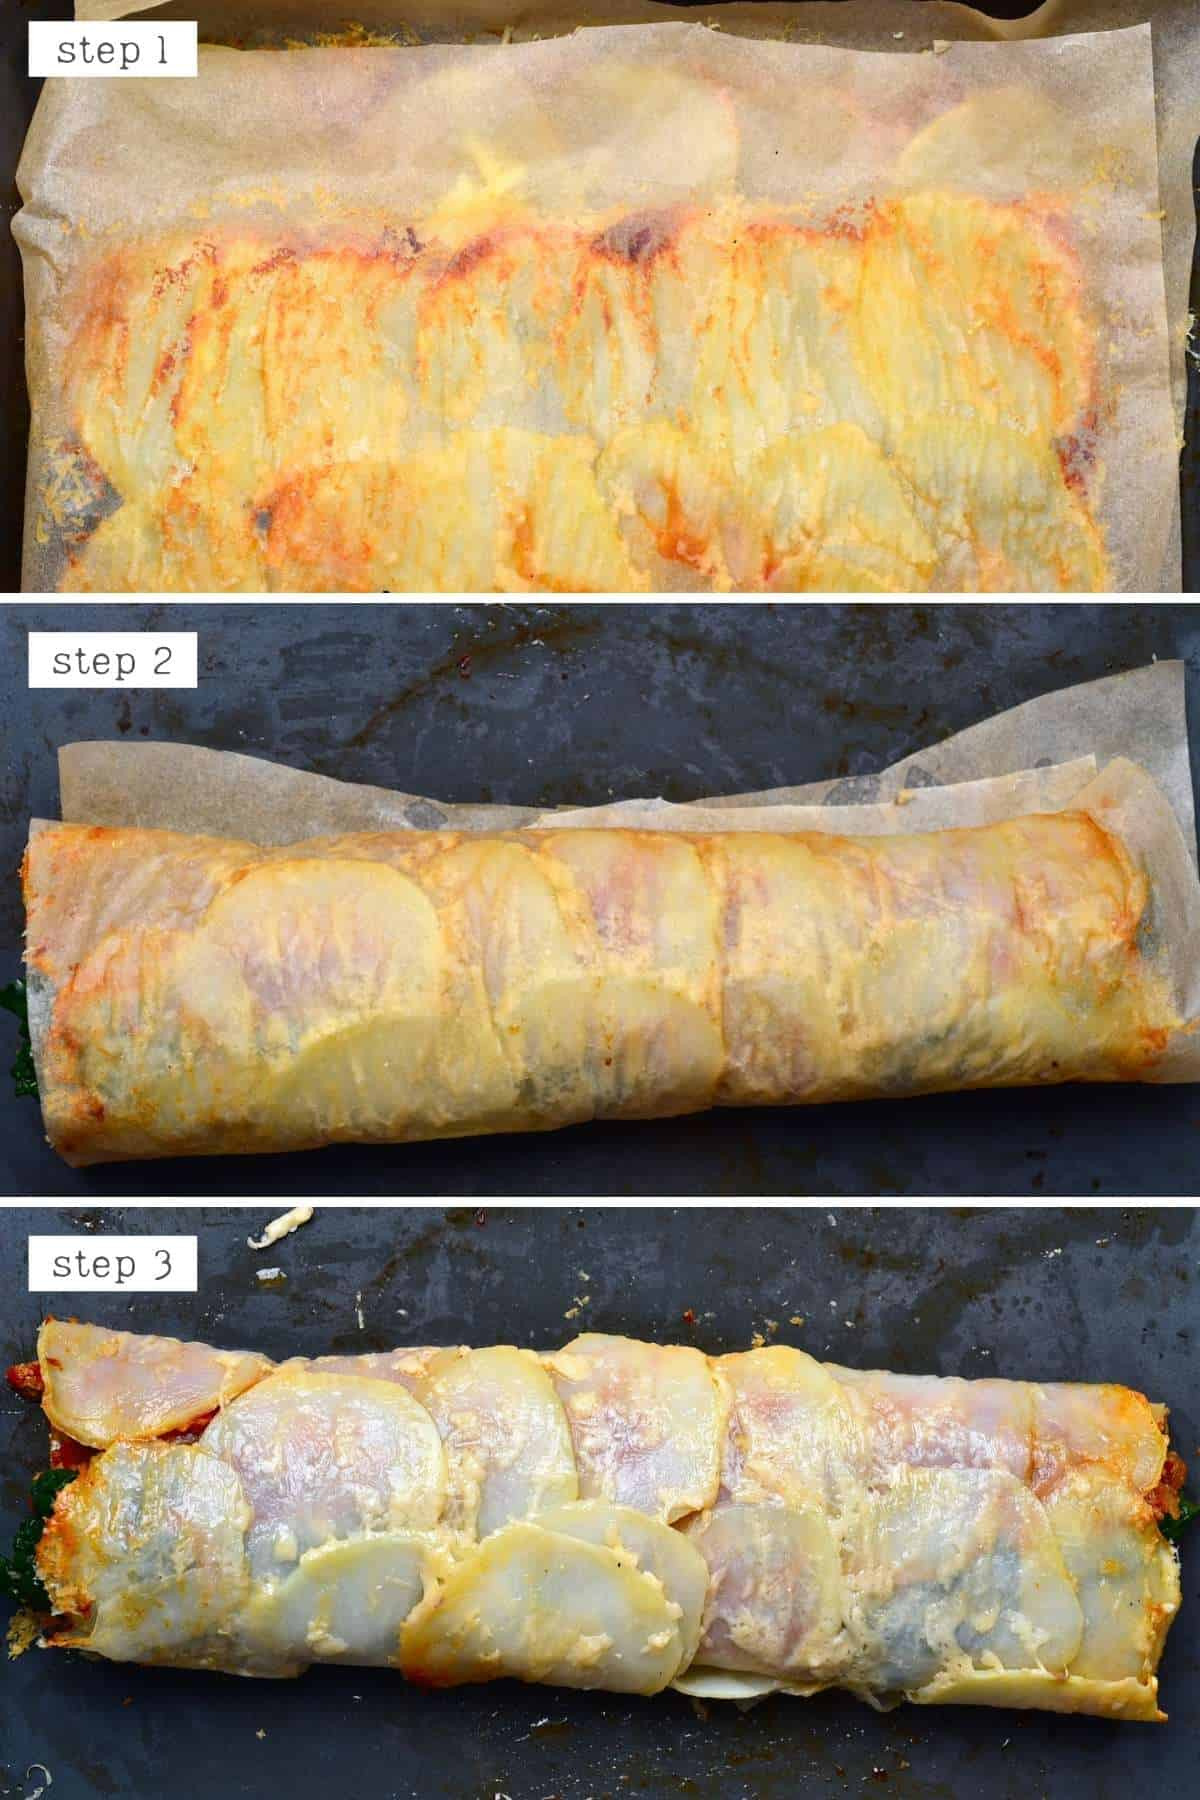 Steps for rolling scalloped potato